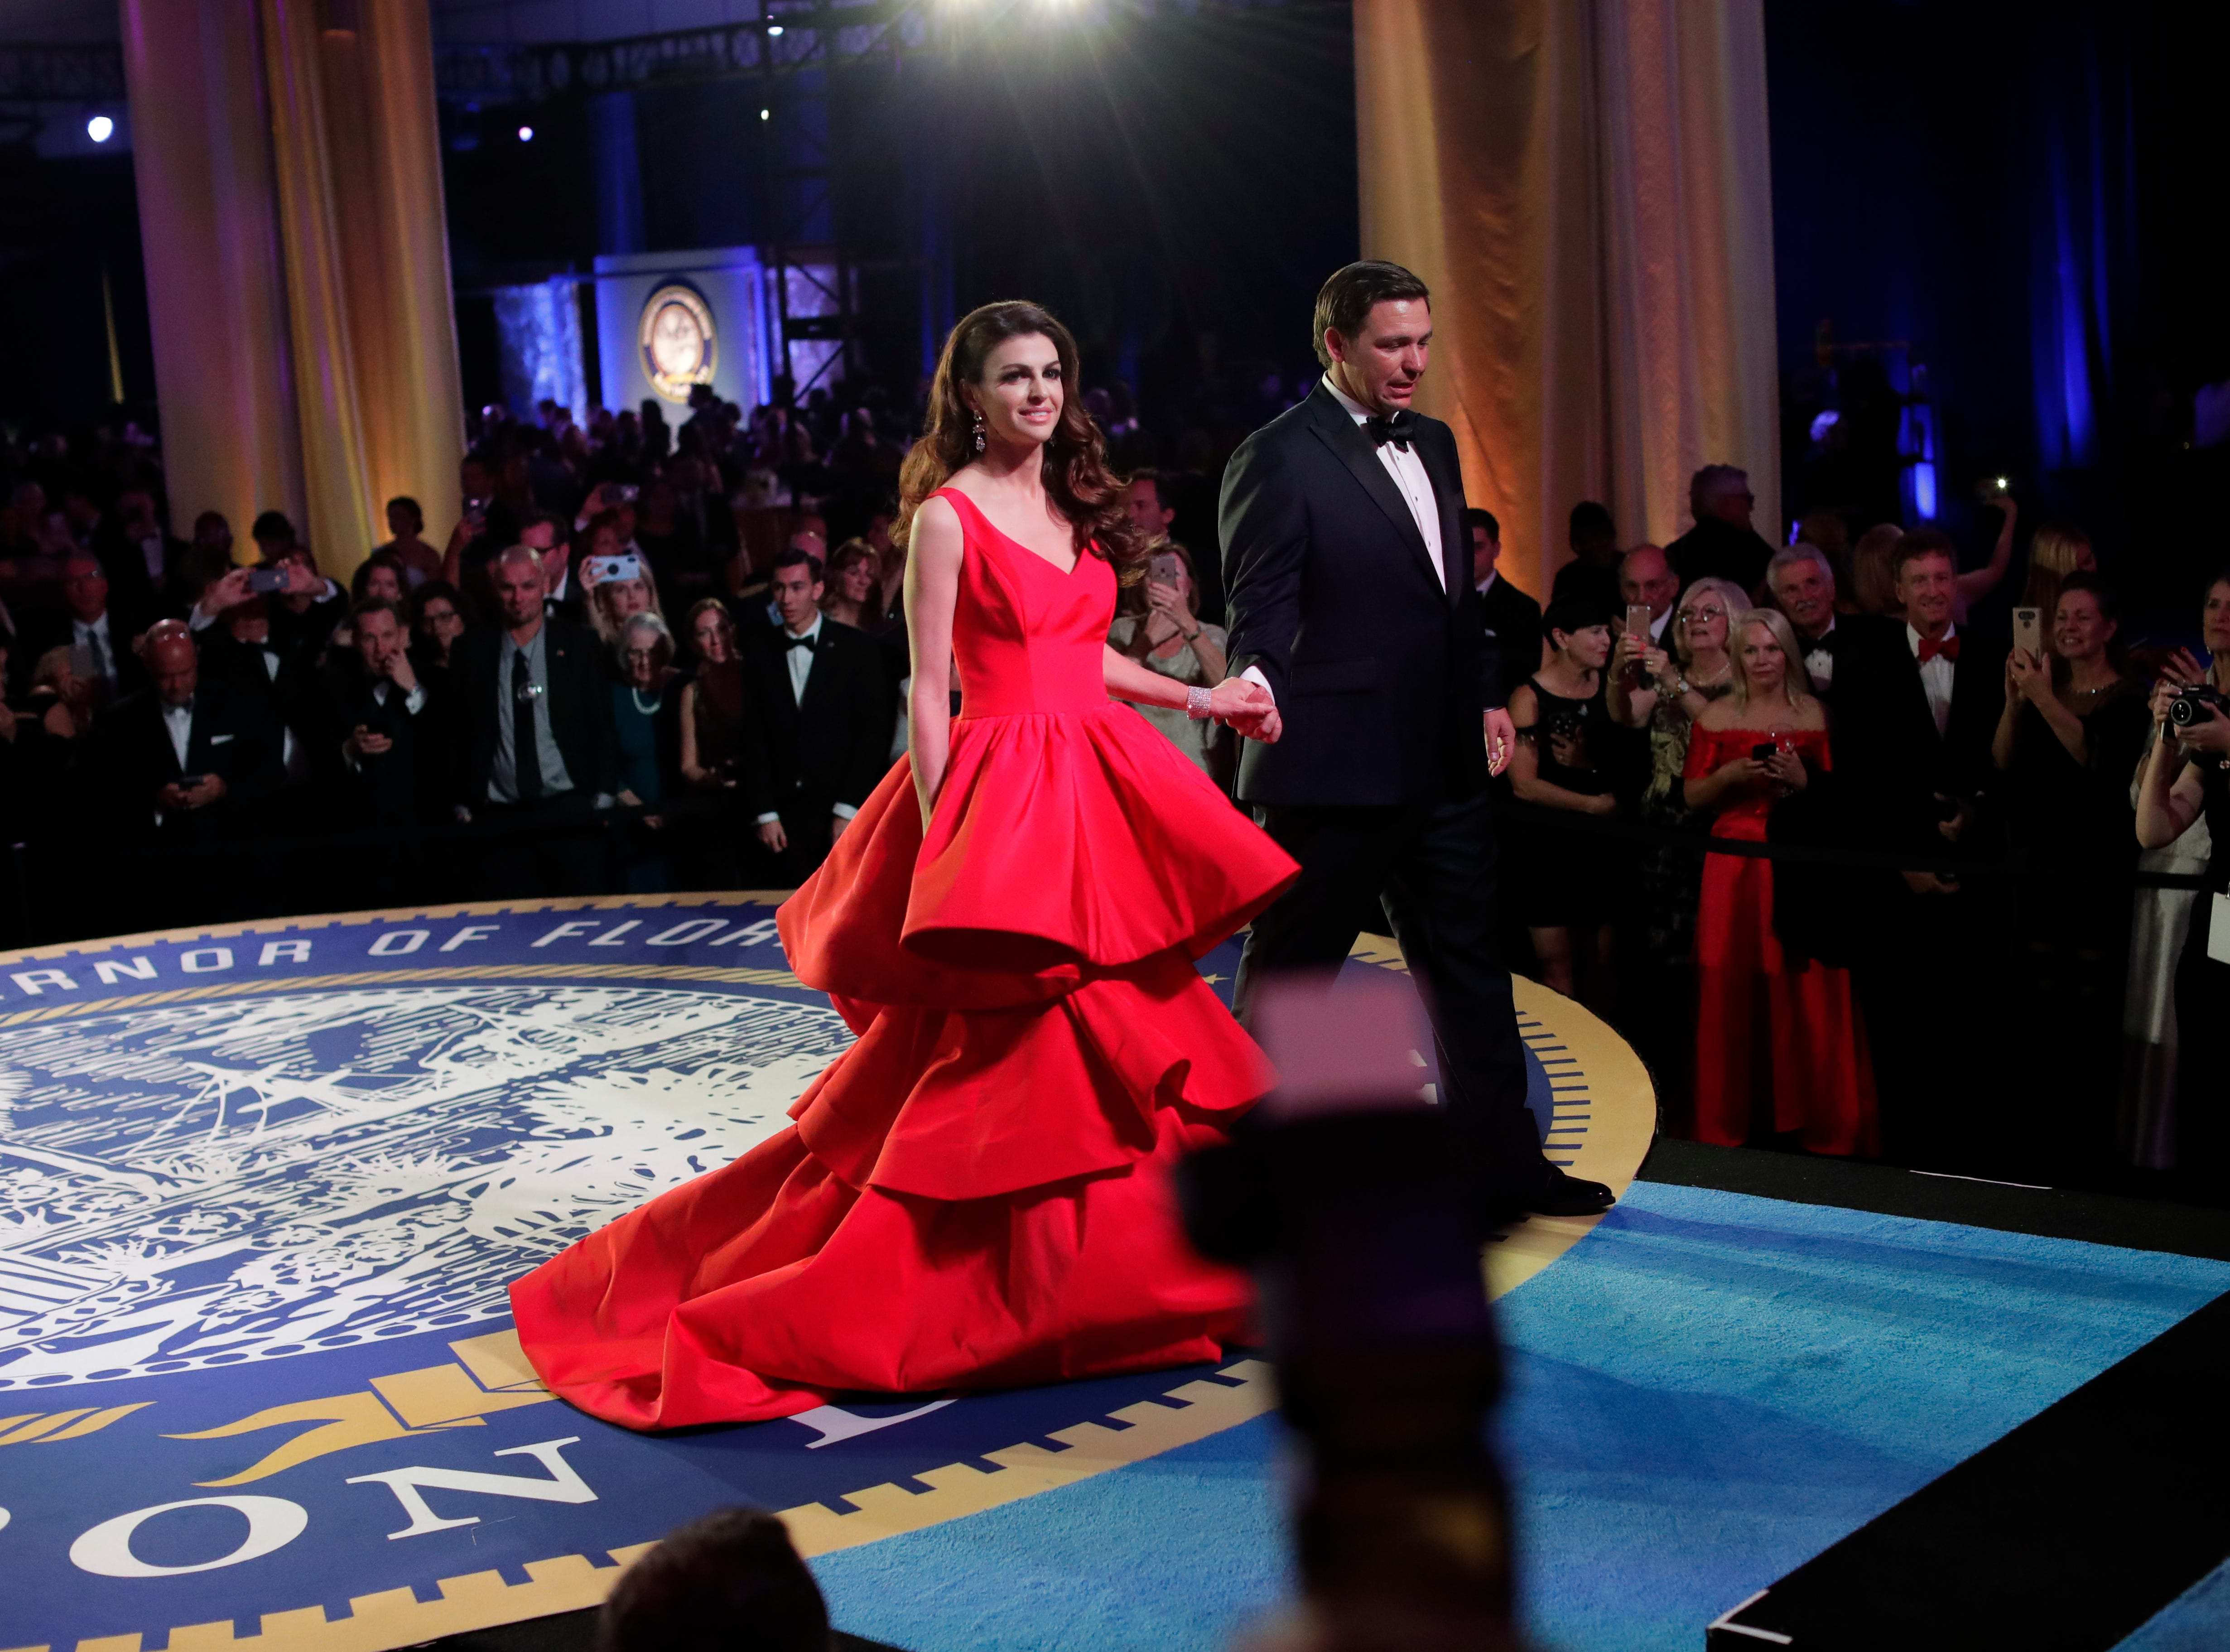 Hundreds of guests from all over Florida attend Florida's 46th Governor's Inaugural Ball at the Tucker Civic Center, Tuesday, Jan. 8, 2019. First lady Casey DeSantis and Gov. Ron DeSantis exit the stage after meeting with guests.